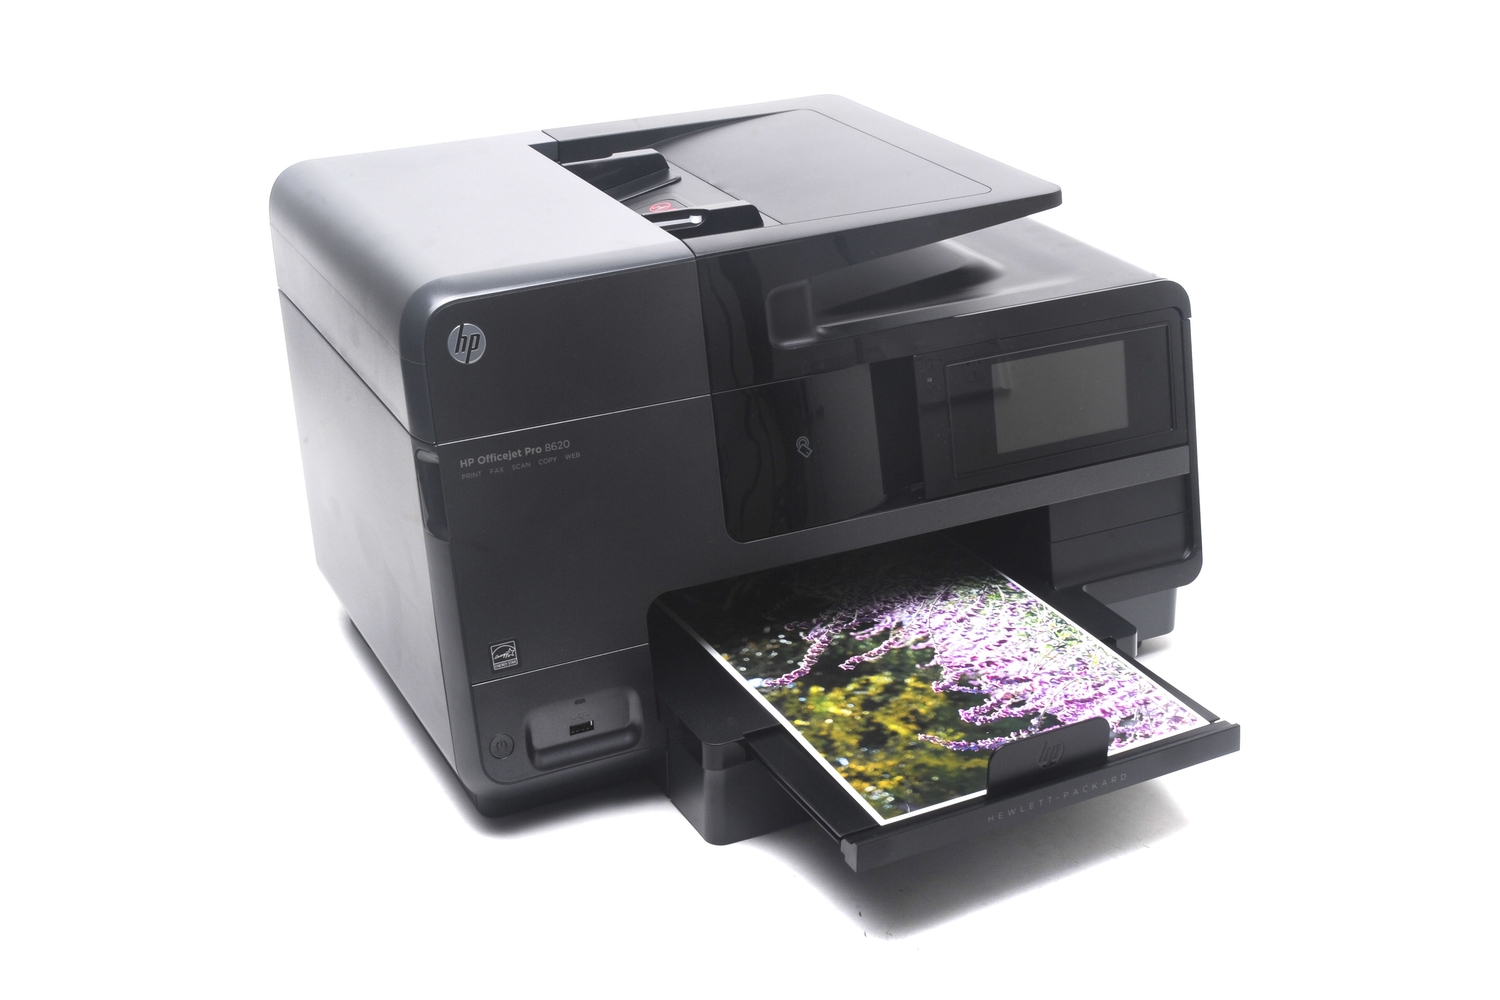 user guide for et-4550 printer